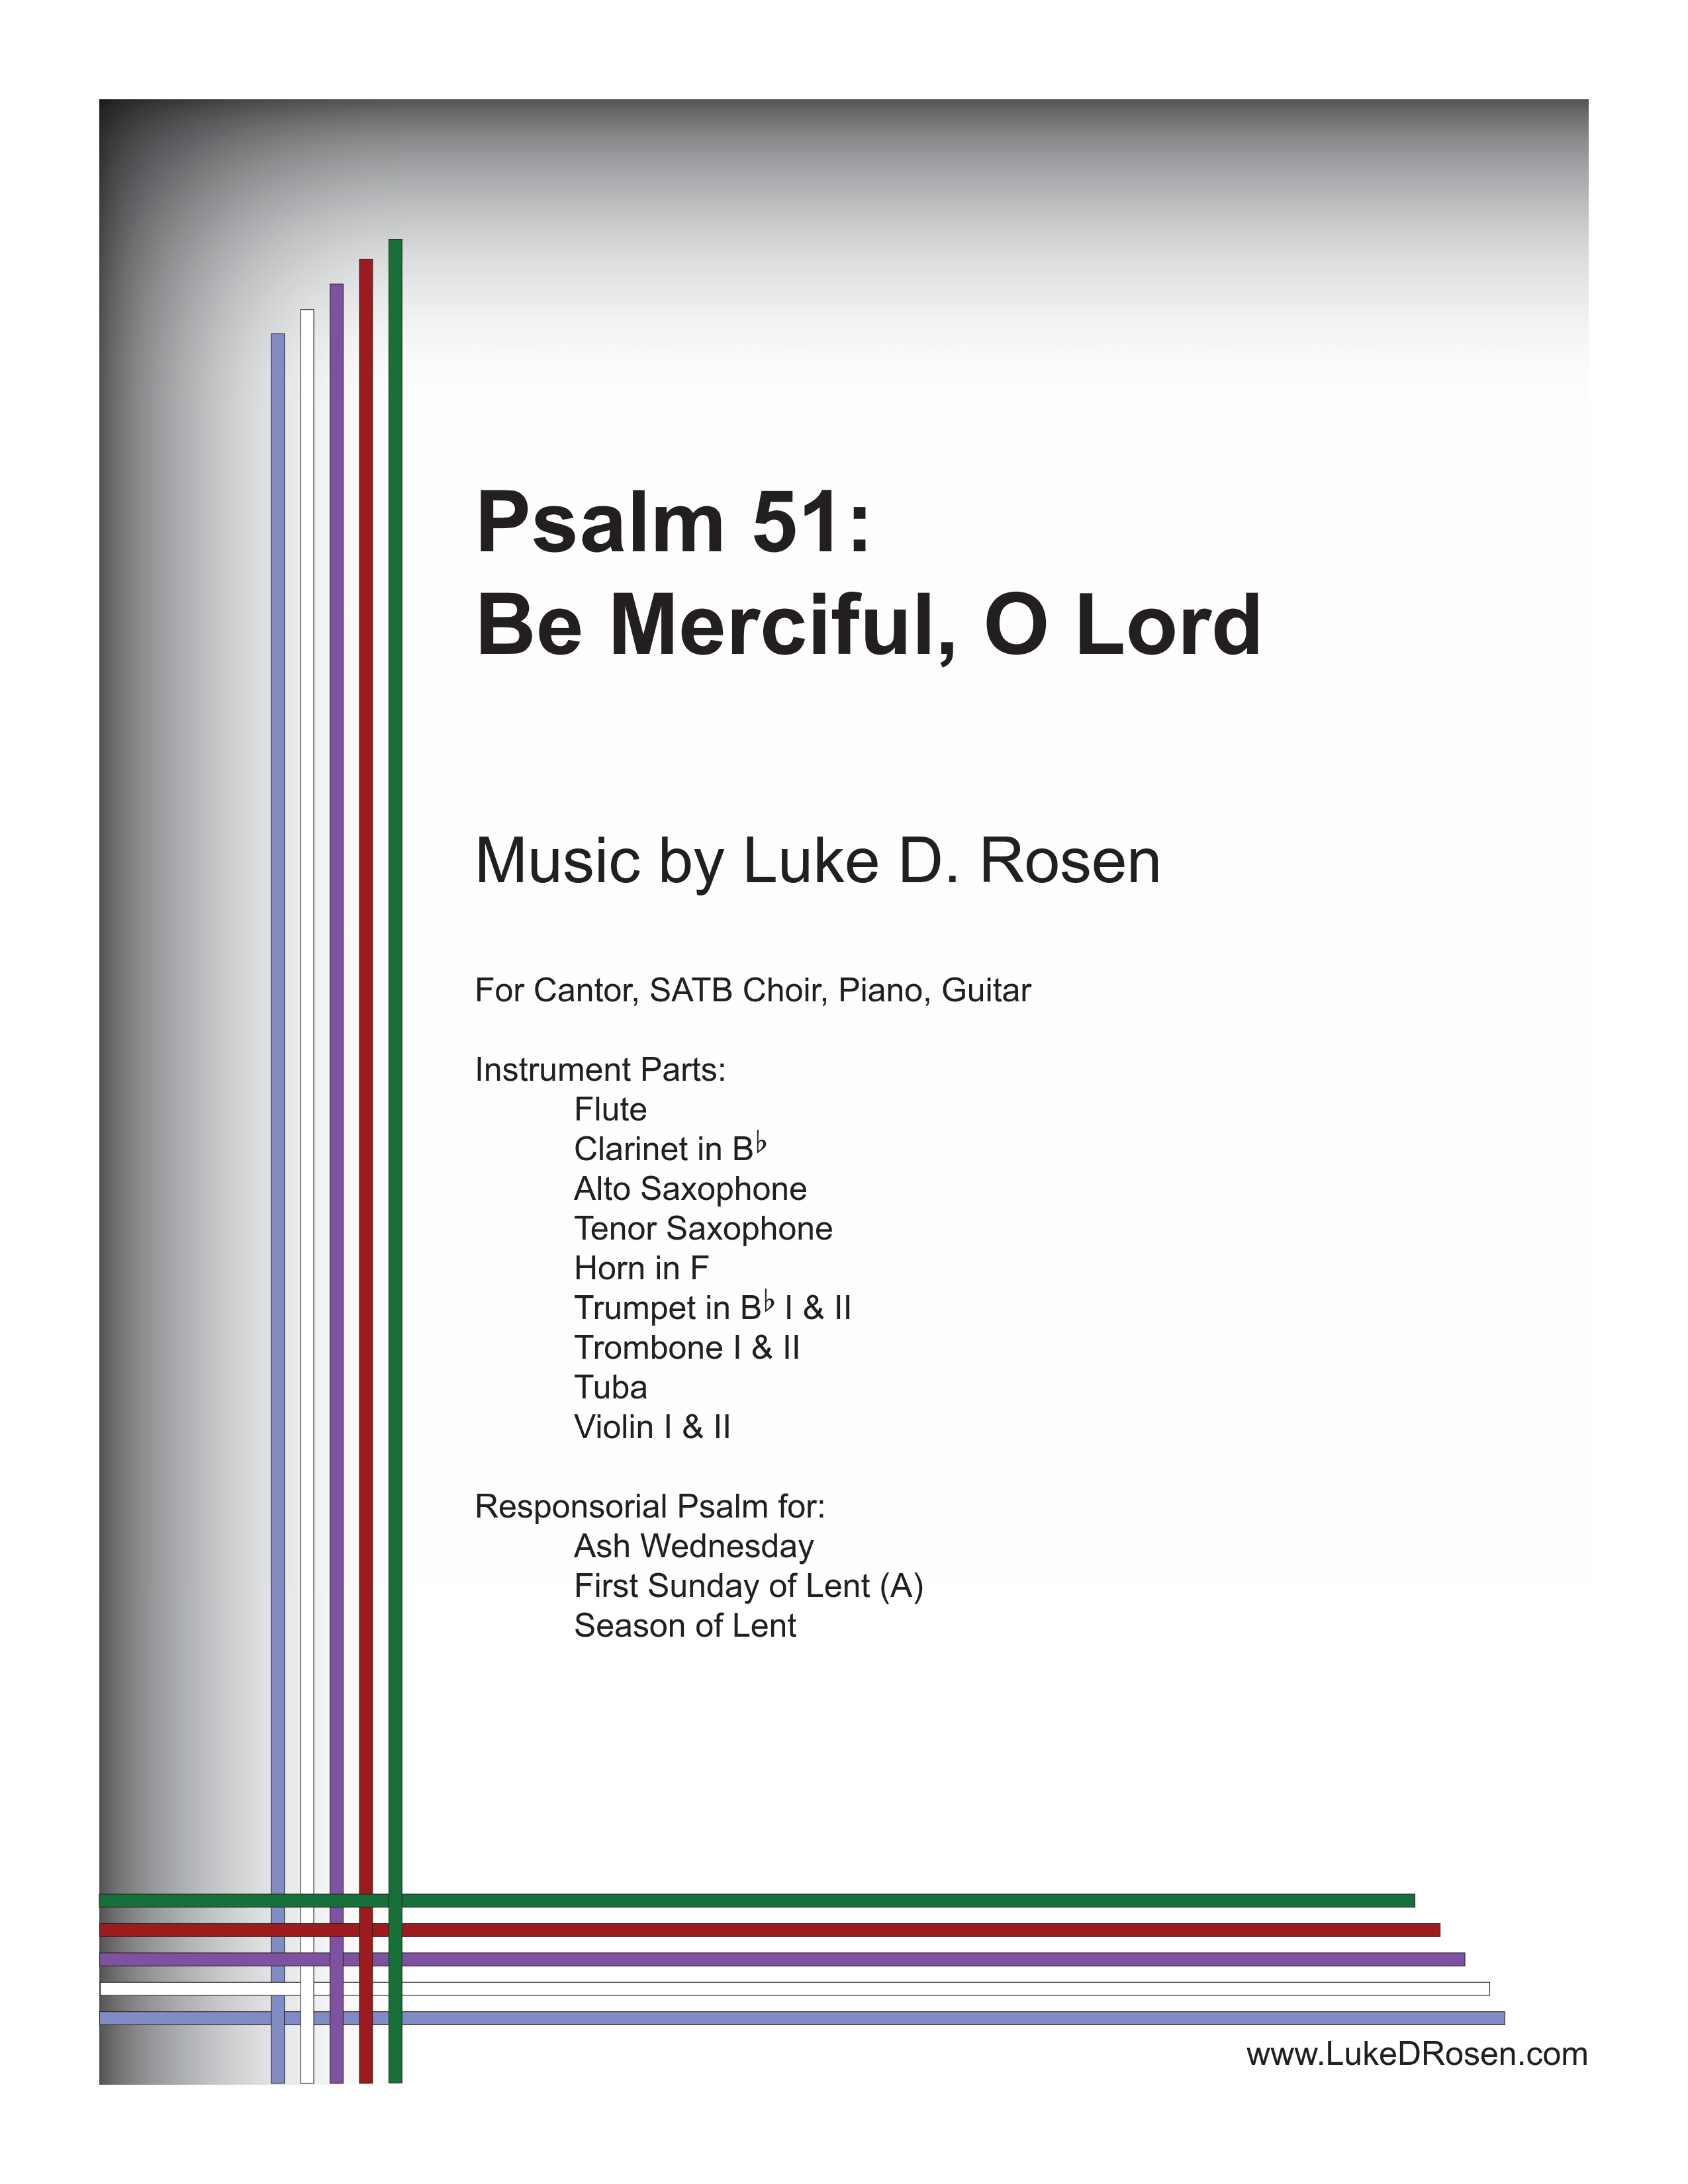 Psalm 51 Be Merciful O Lord Rosen Sample Complete PDF 1 png